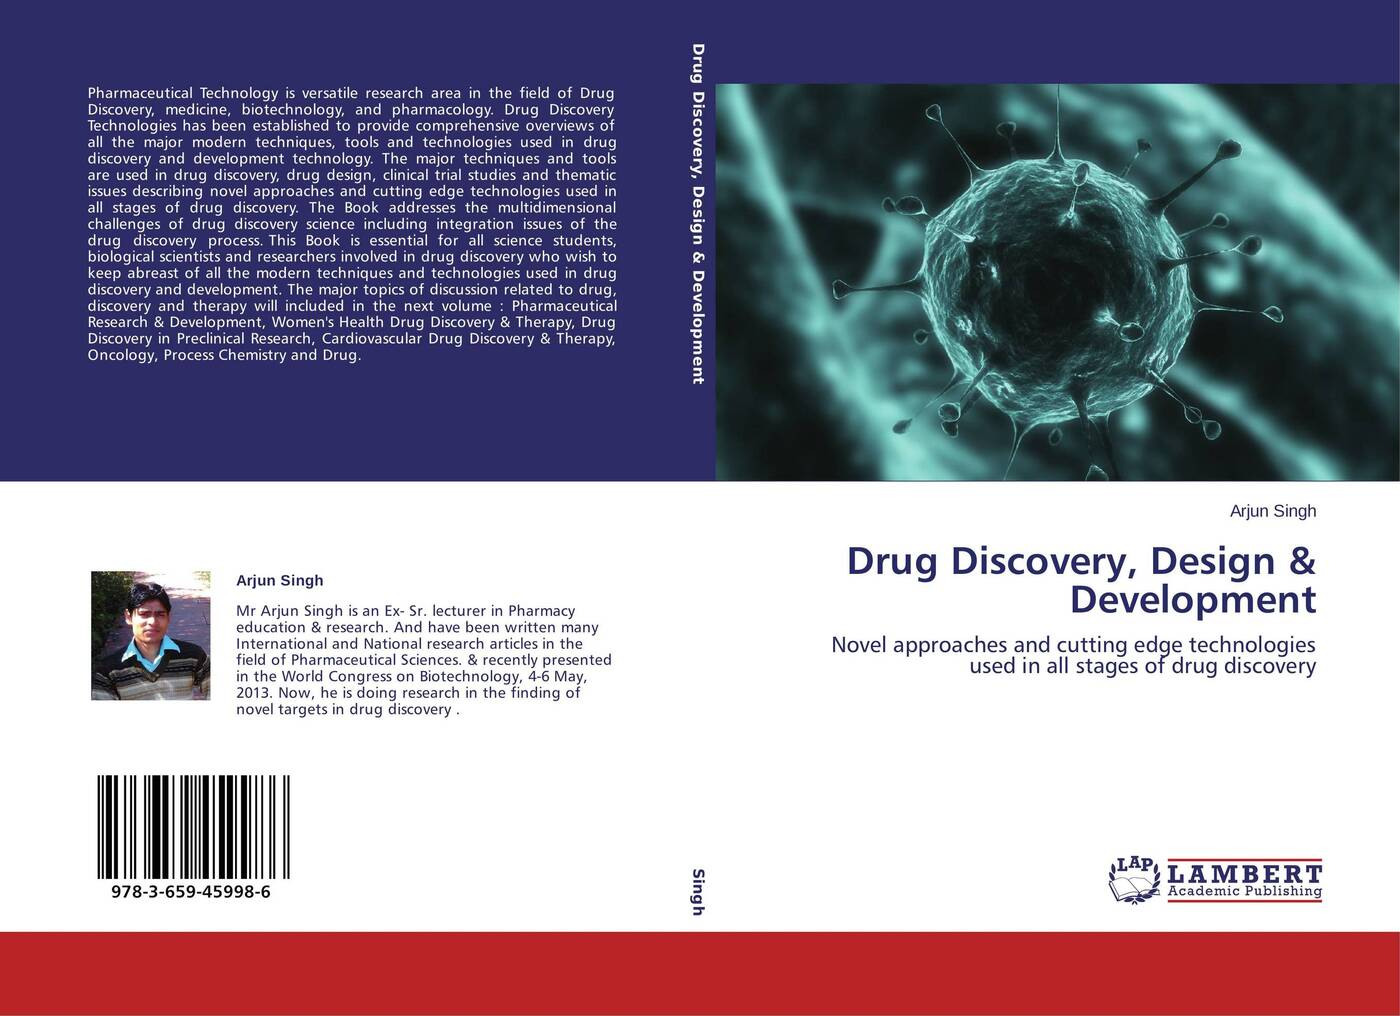 Arjun Singh Drug Discovery, Design & Development castanho miguel peptide drug discovery and development translational research in academia and industry